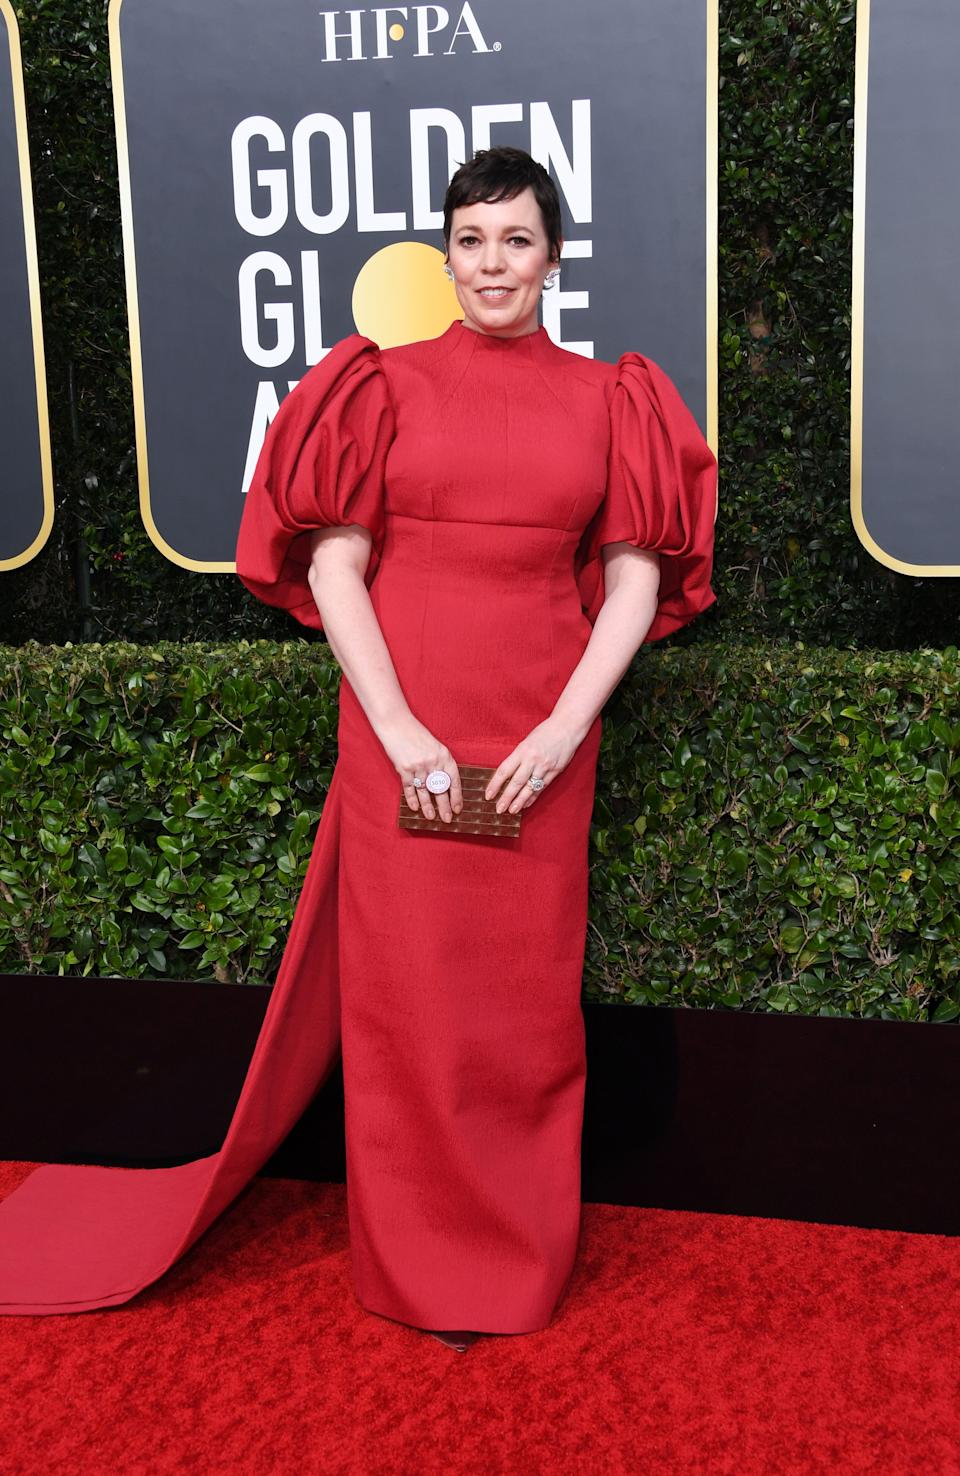 Thank you to the legendary Olivia Colman for not being afraid of bold sleeves.